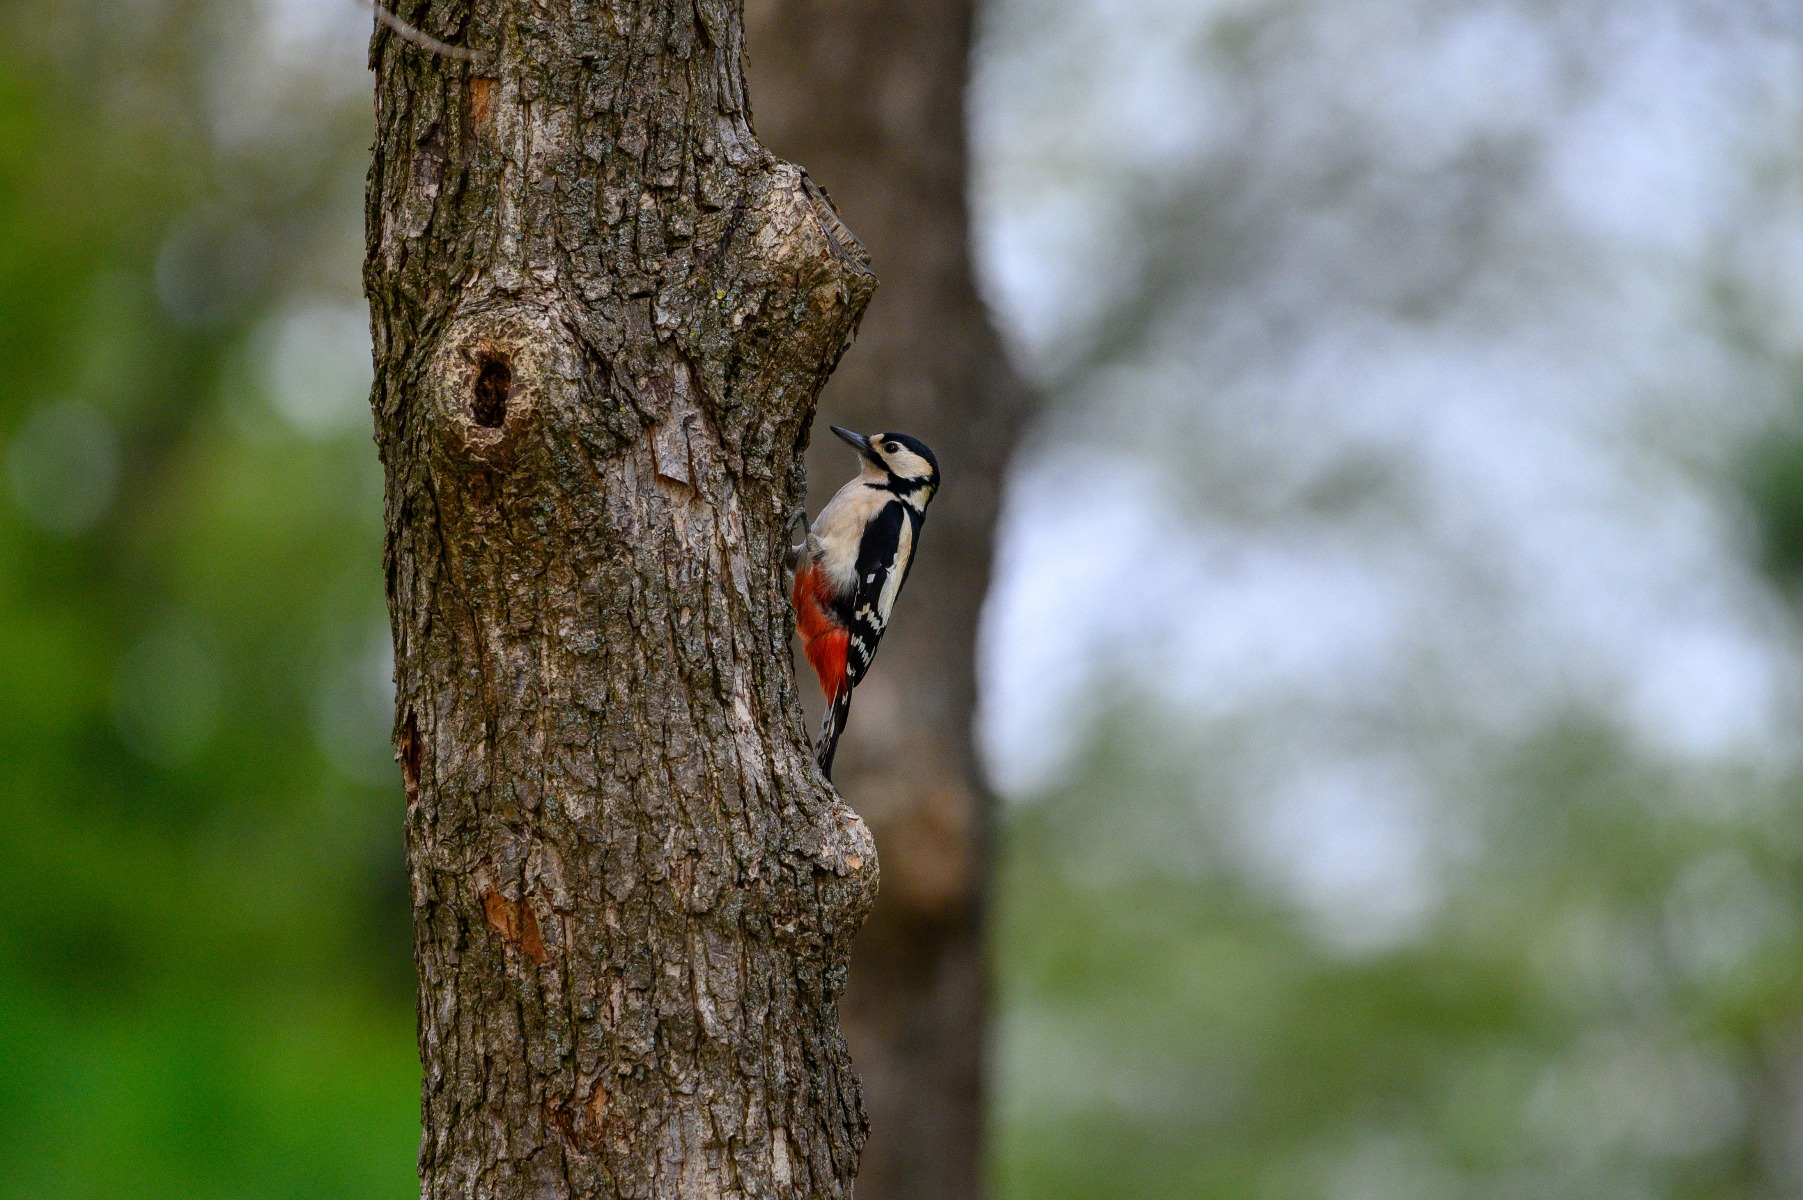 Woodpecker bird black white and red perched on a tree